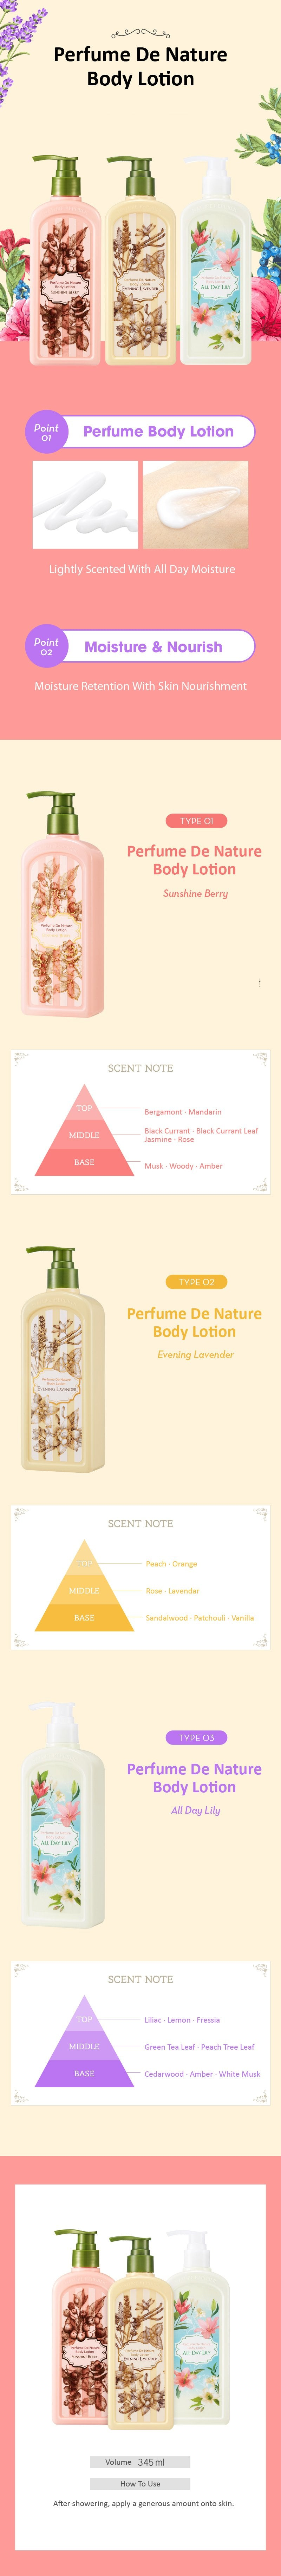 PERFUME DE NATURE BODY LOTION - ALL DAY LILY